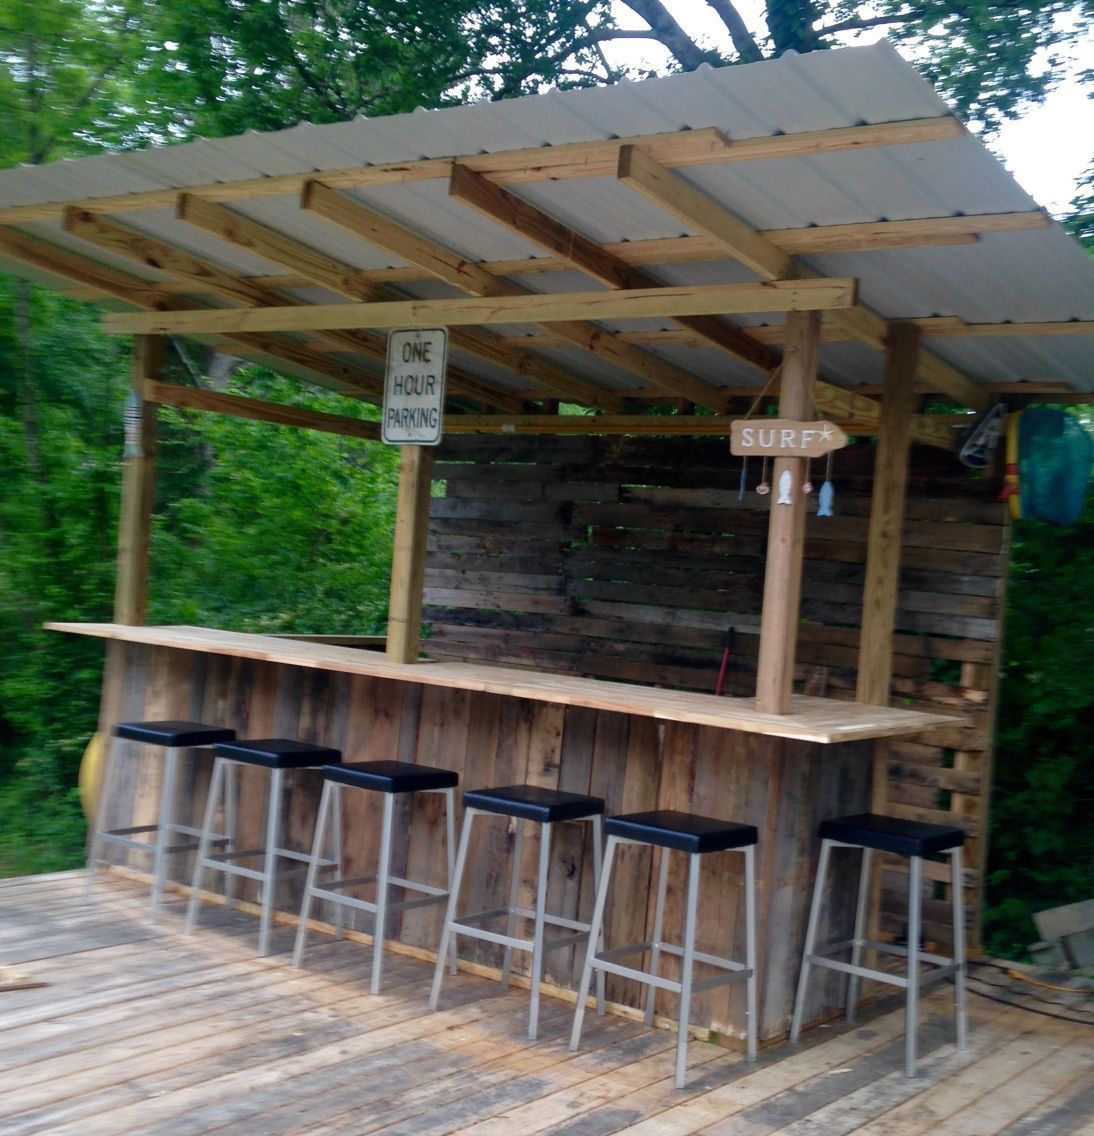 Our Little Quot Tiki Bar Quot From Pallet Wood And Salvaged Metal Roofing And Acacia Countertops Still